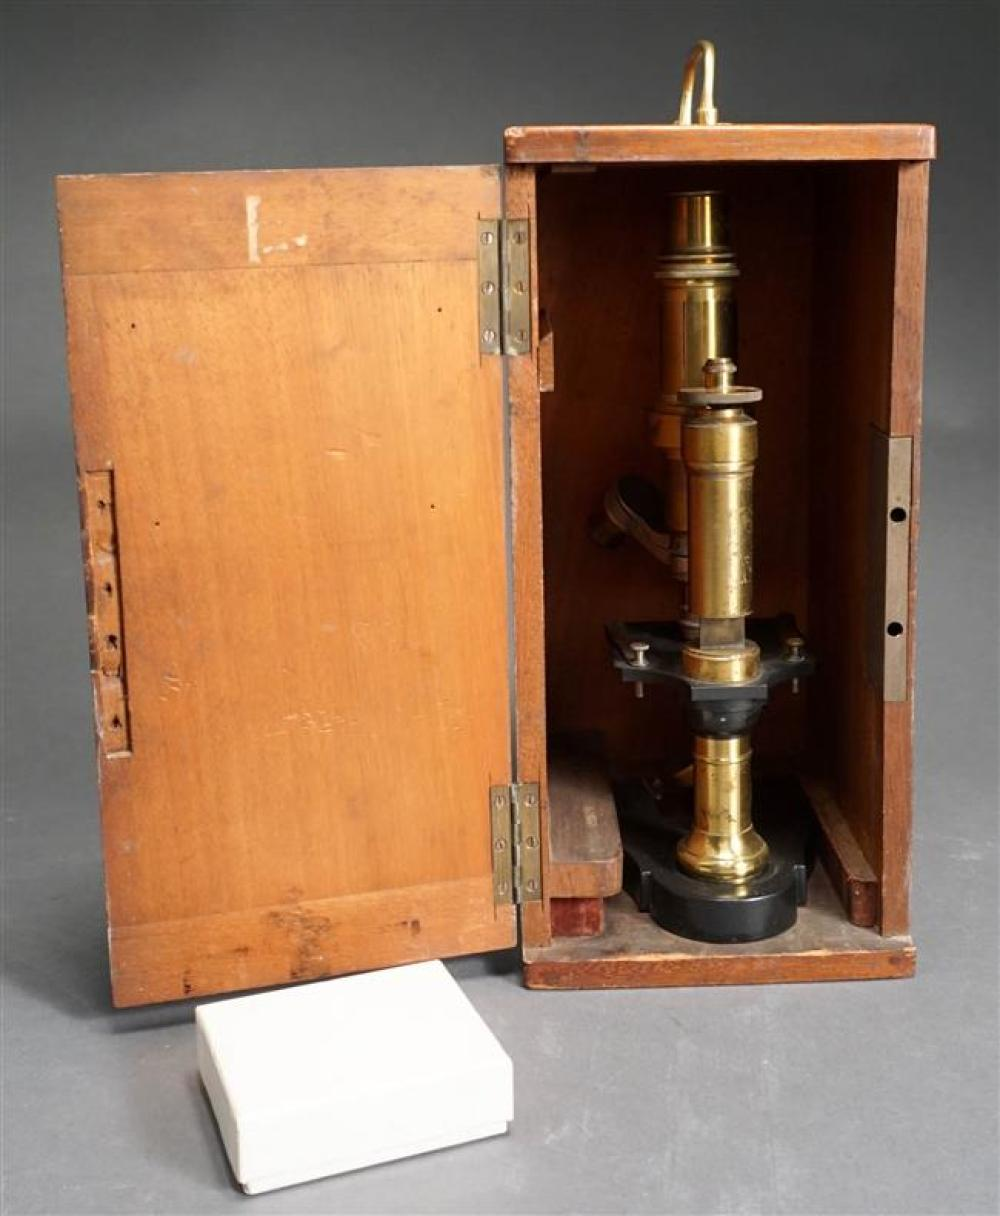 Brass Compound Microscope by Camille Sebastion Nachet Height: 14-1/2 in